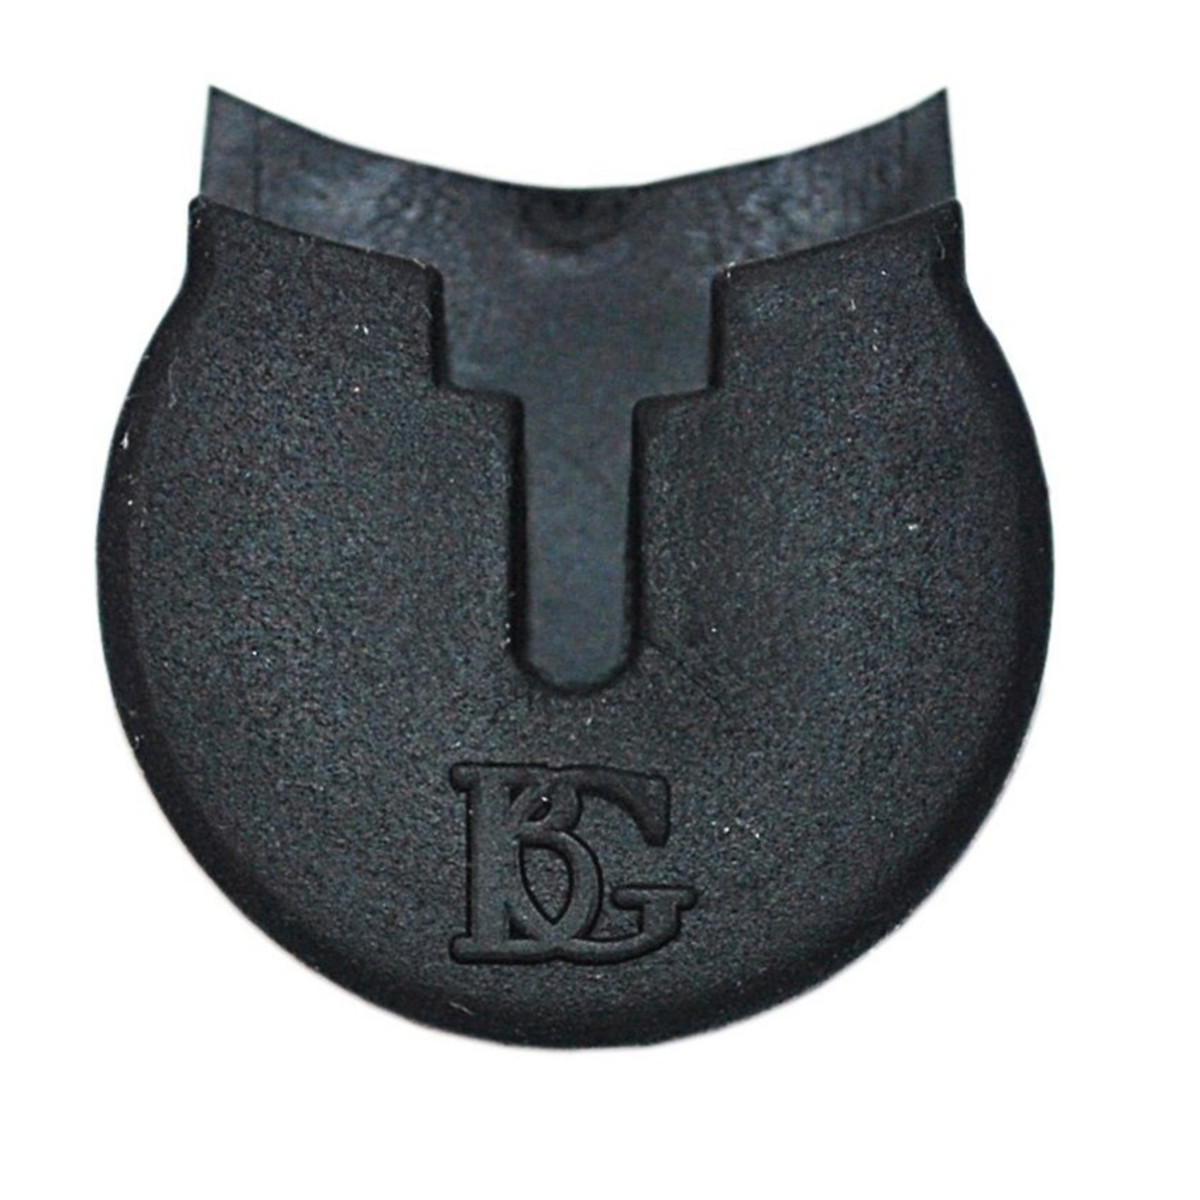 Image of BG Oboe and Clarinet Thumb Rest Cushion Regular